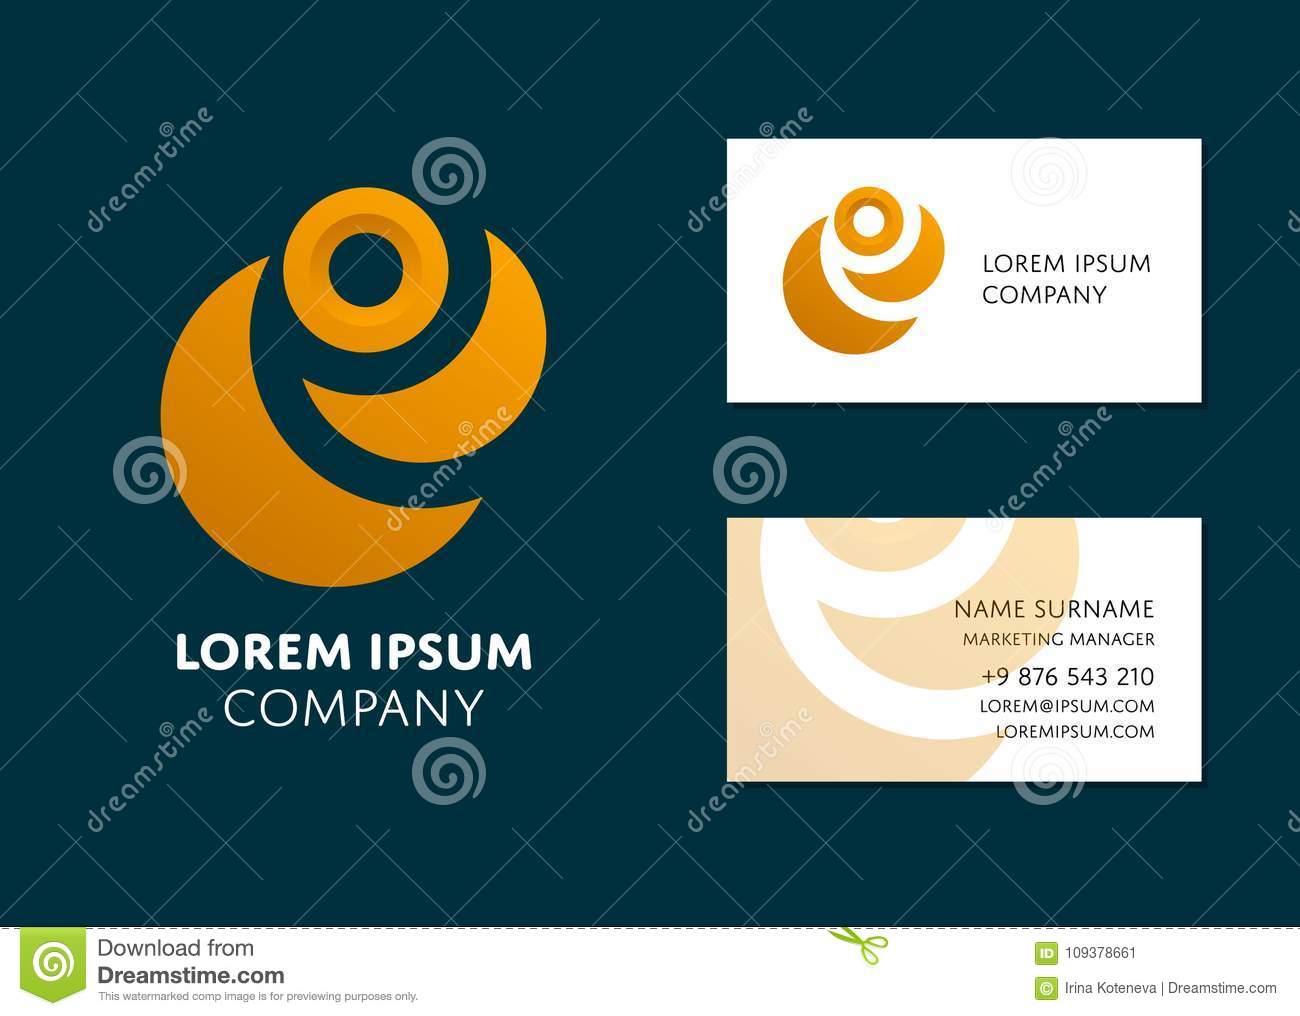 Business card template with yellow abstract logo stock vector download business card template with yellow abstract logo stock vector illustration of layout geometric colourmoves